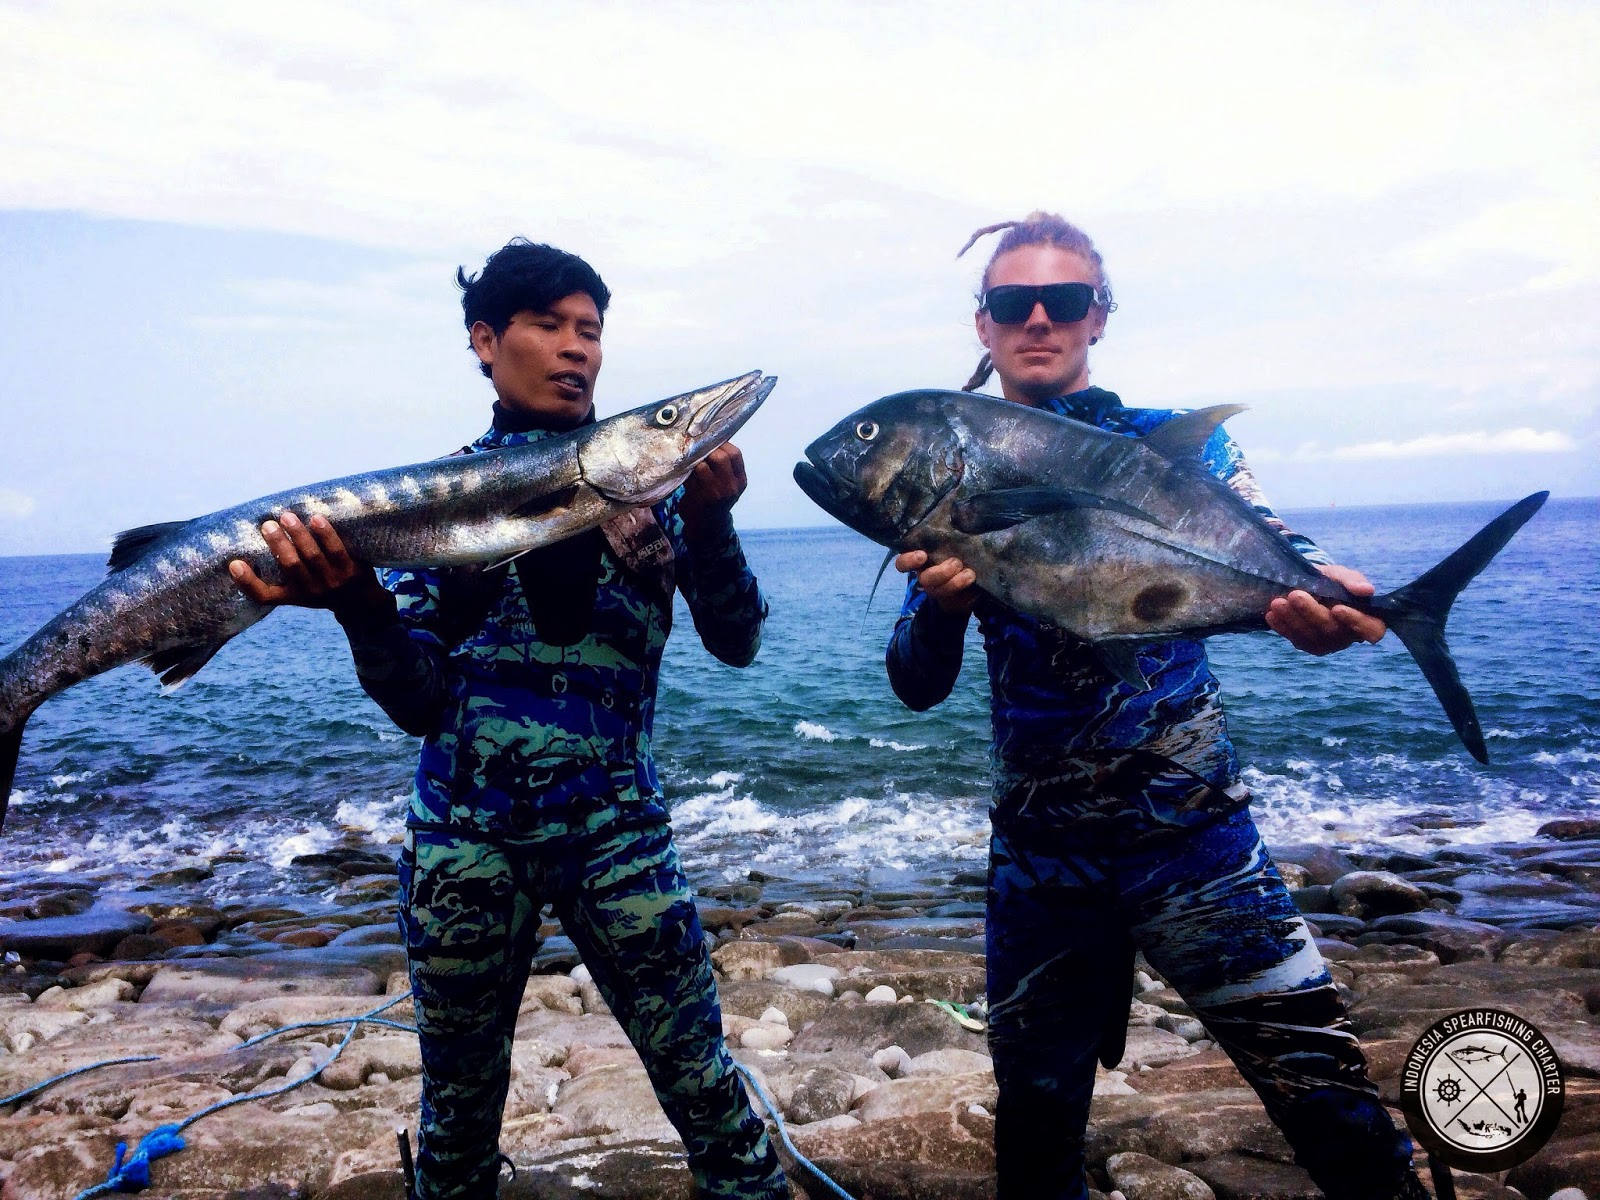 Spearfishing Bali Indonesia, Nusa Penida , Amed GT, Giant Trevally, Dogtooth Tuna, Parrotfish, Coronation Trout, Bluefin Trevally, Black Trevally, Mu, Barracuda, Mu, Maori Seaperch